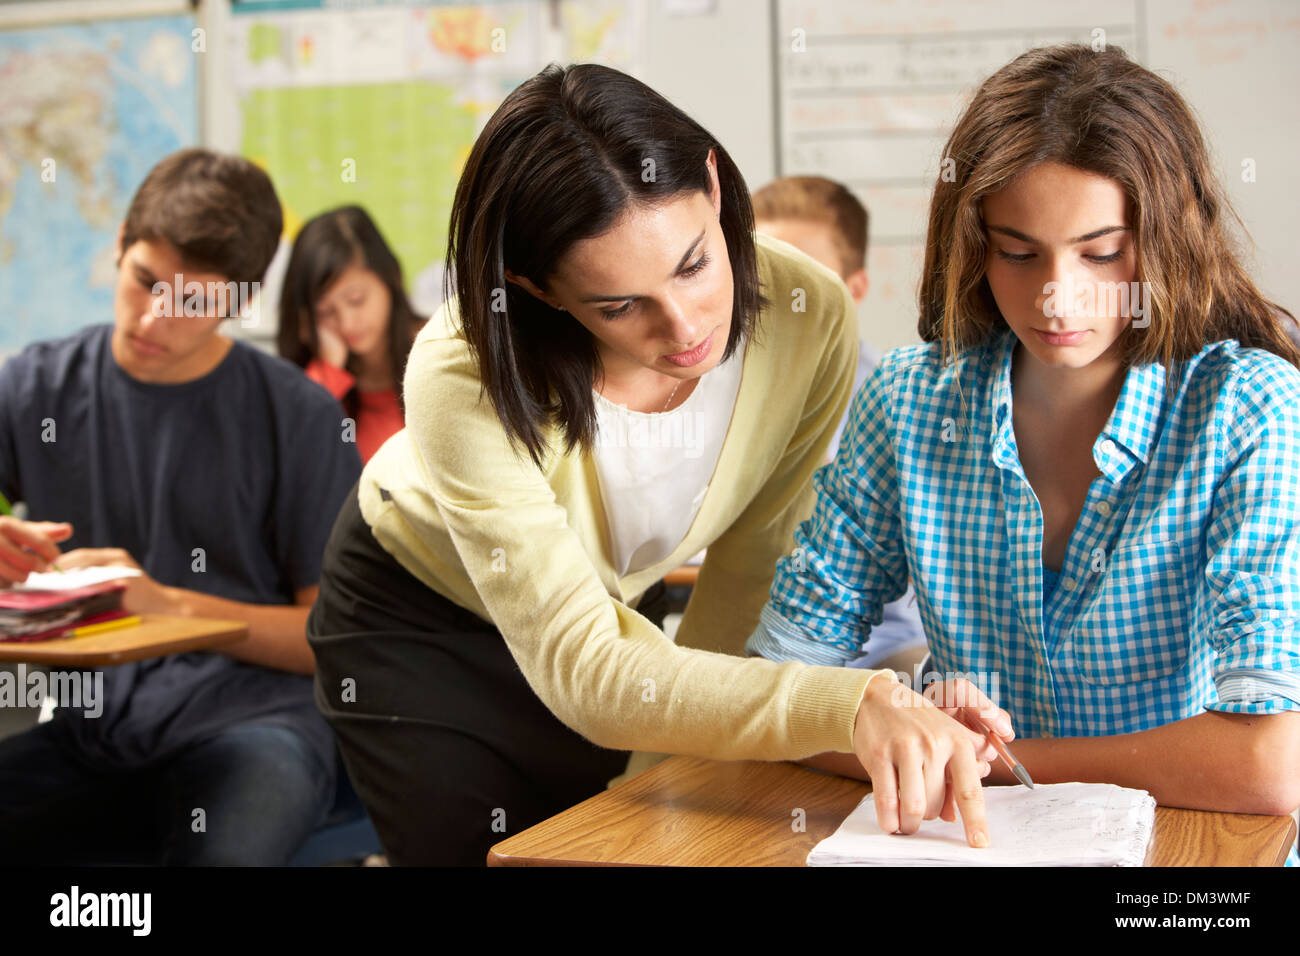 Teacher Helping Female Pupil Studying At Desk In Classroom - Stock Image